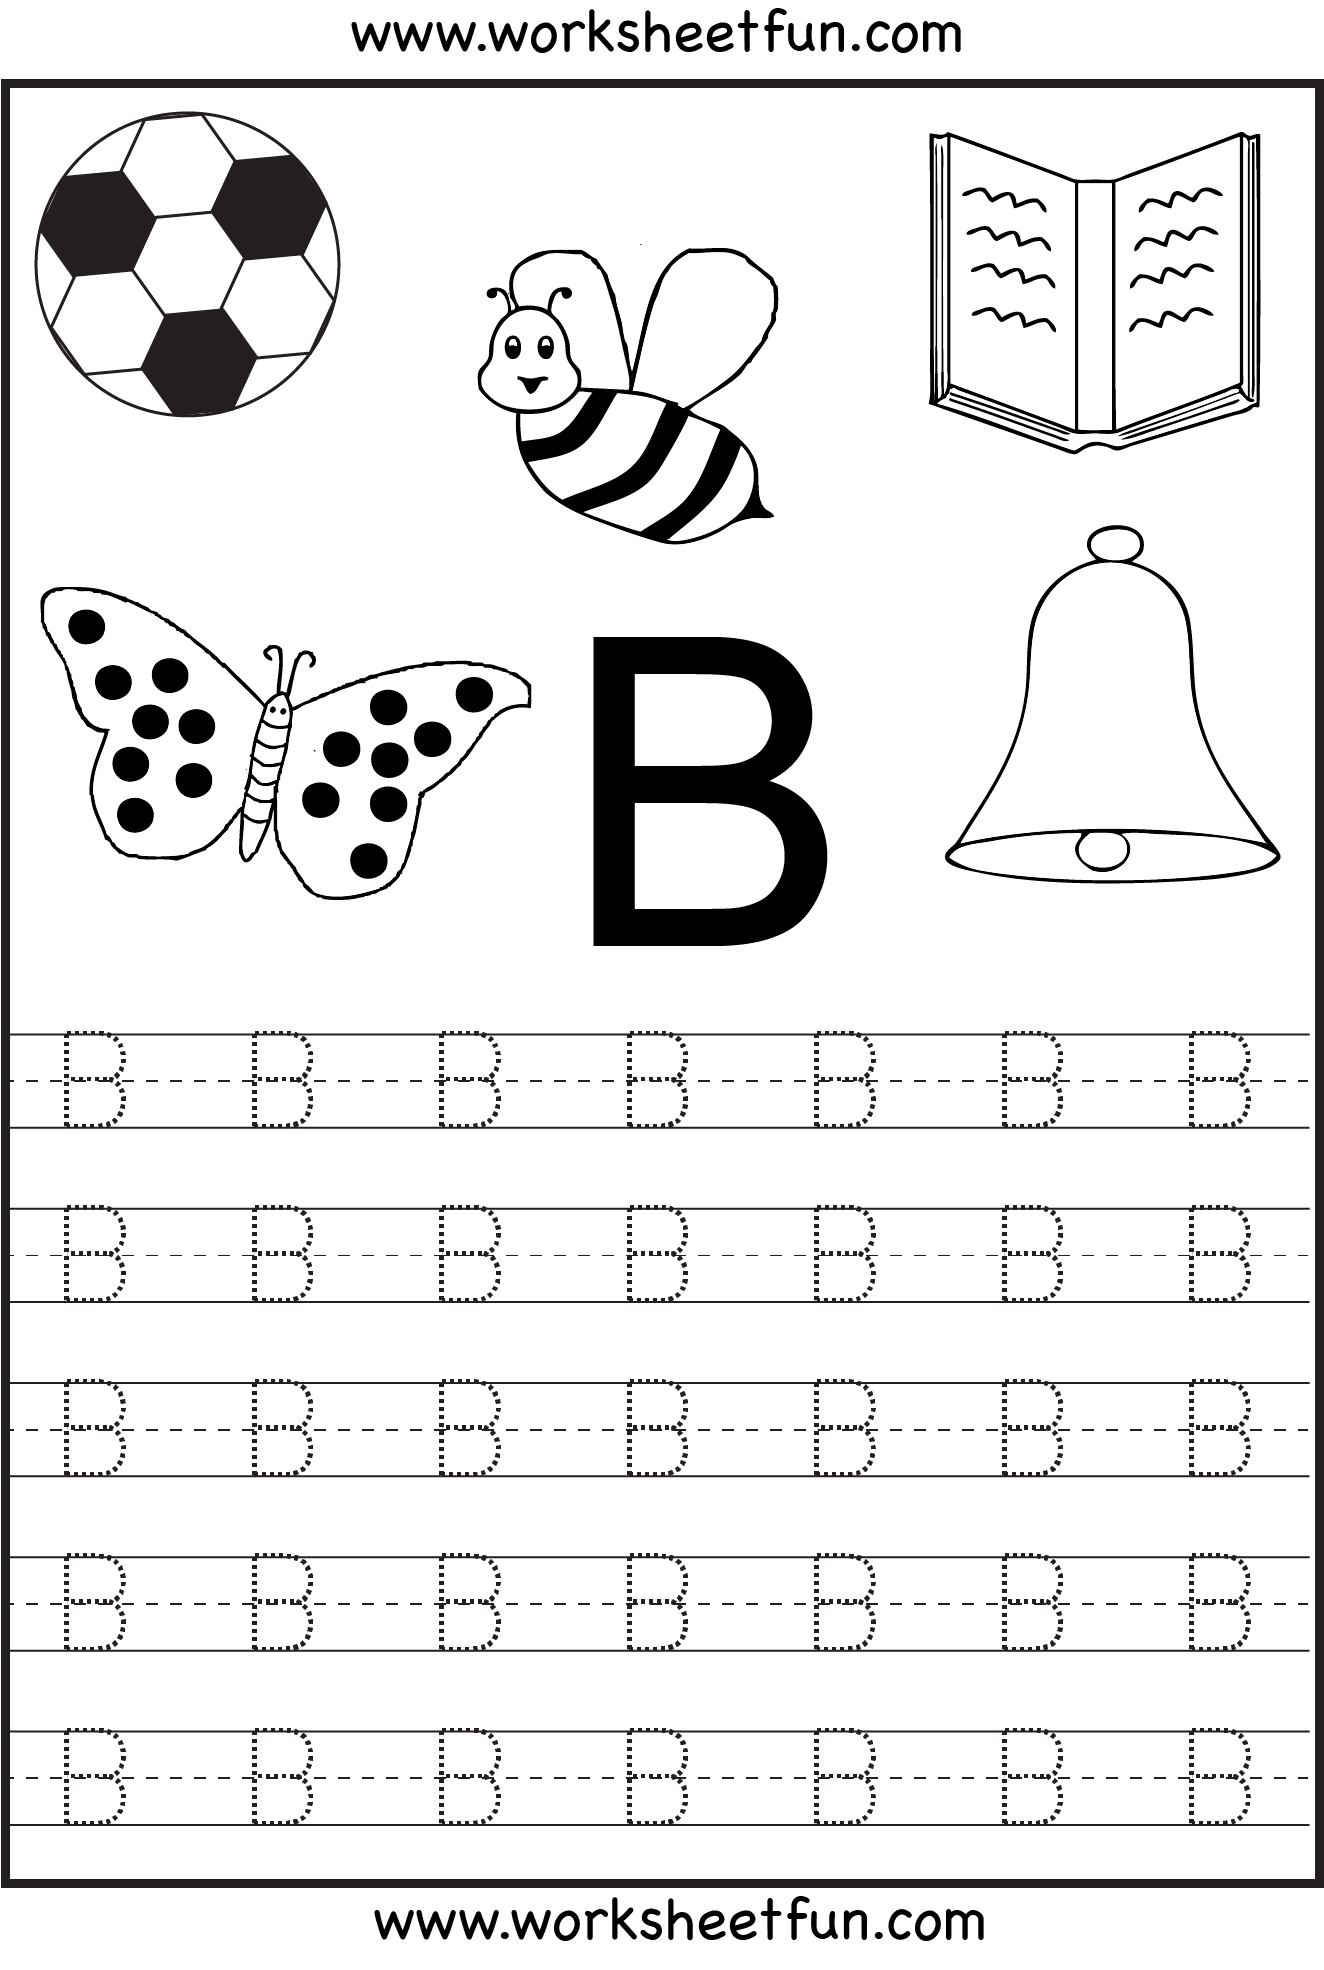 worksheet Letter A Worksheets For Kindergarten free printable letter tracing worksheets for kindergarten 26 worksheets